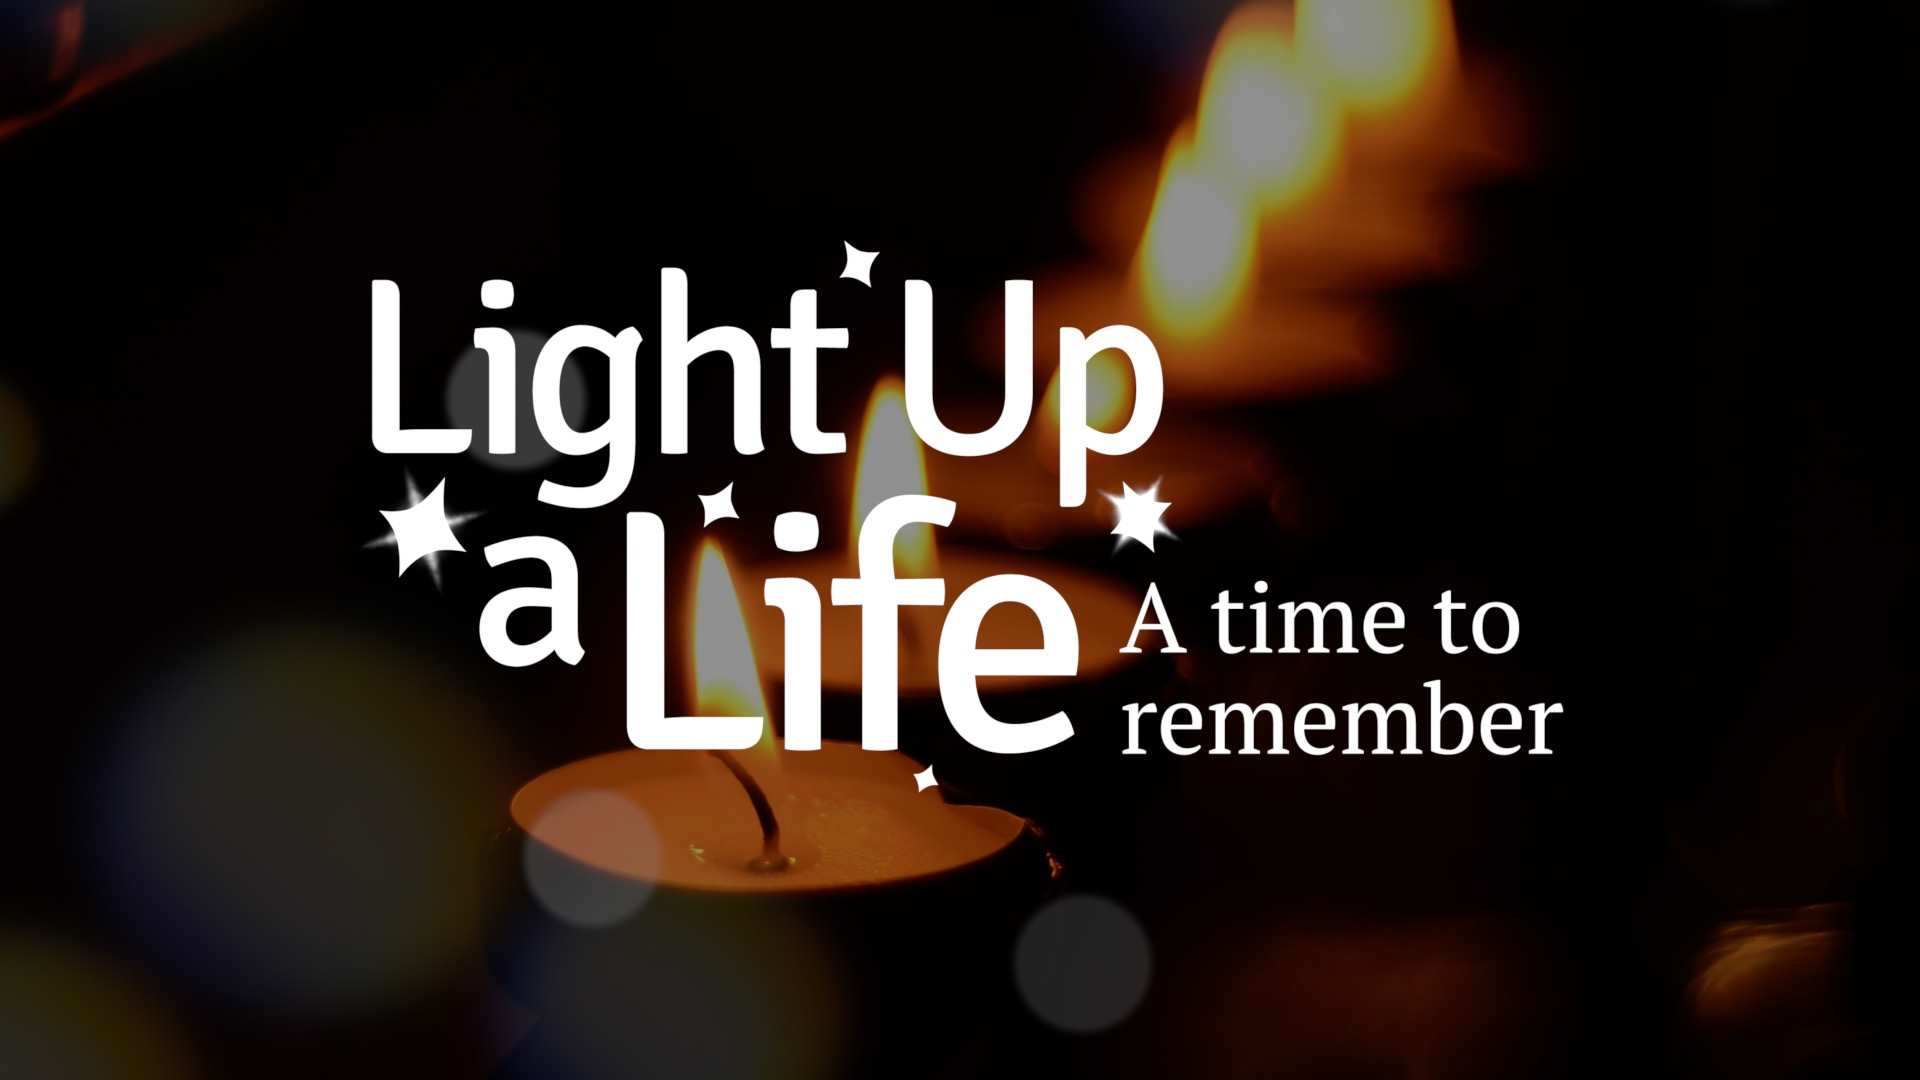 Lightupalife2020